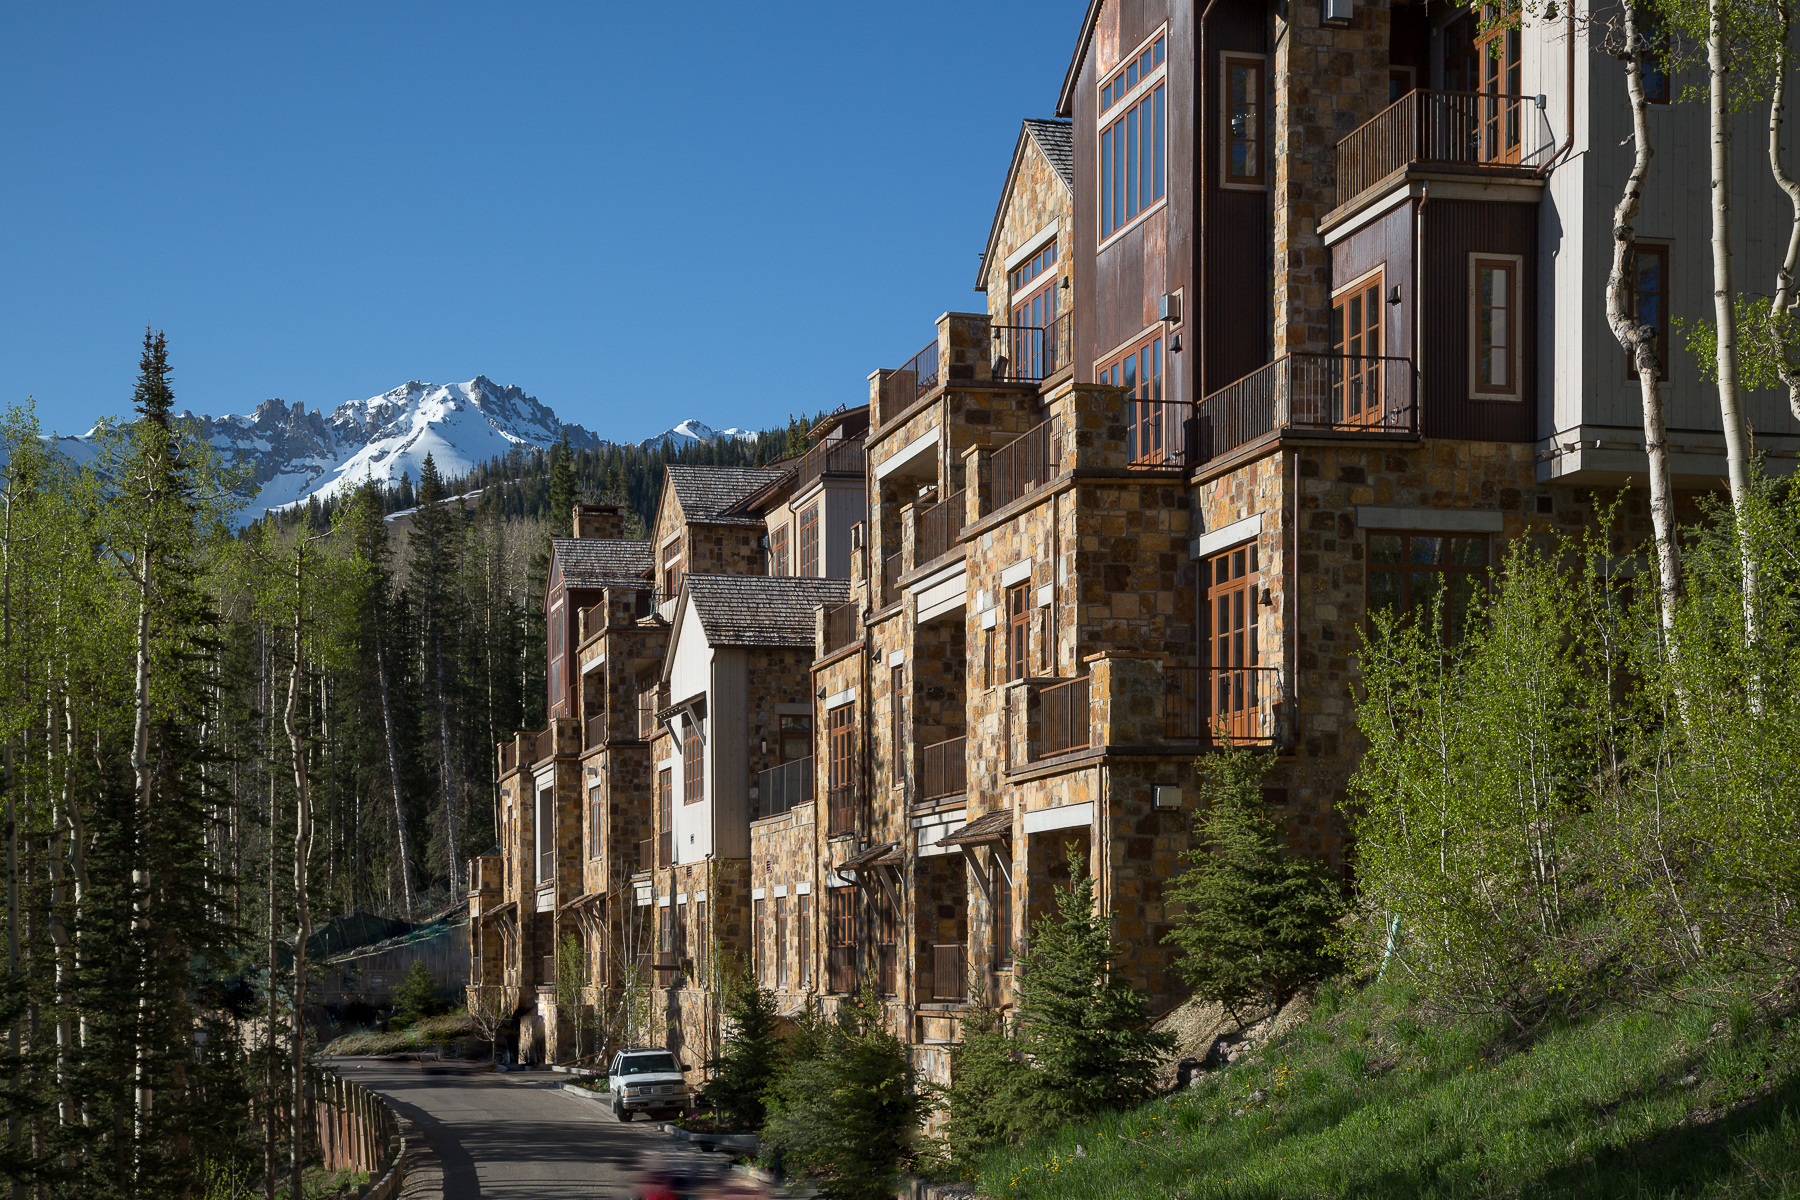 Moradia para Venda às Villas At Cortina 125 Cortina Drive Unit 4 Telluride, Colorado, 81435 Estados Unidos